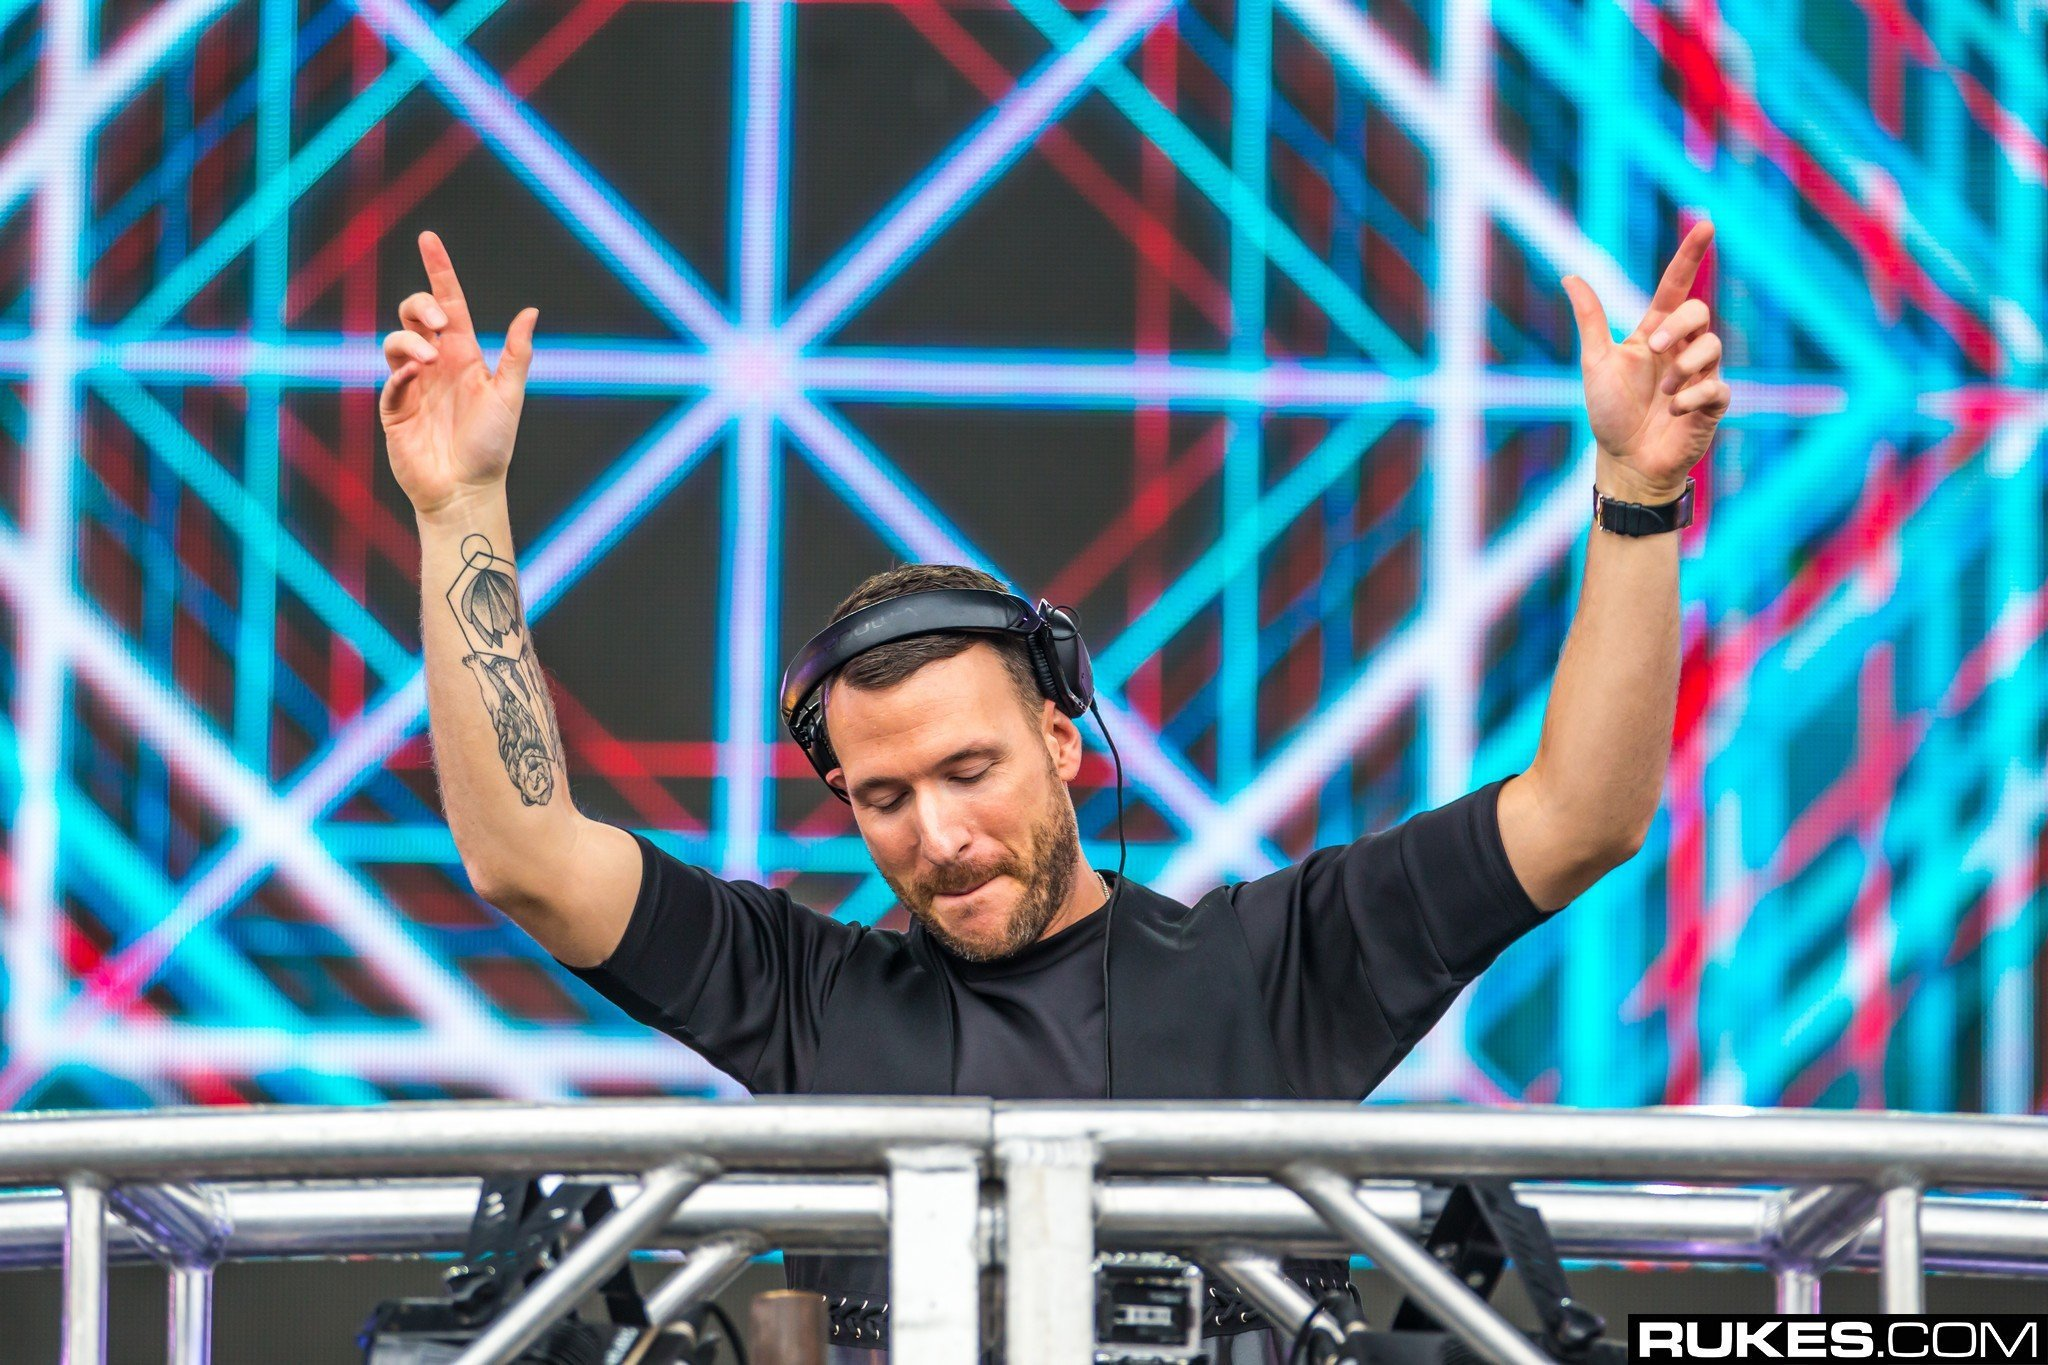 Don Diablo Sells World's First Full-Length Concert NFT for $1.2 Million